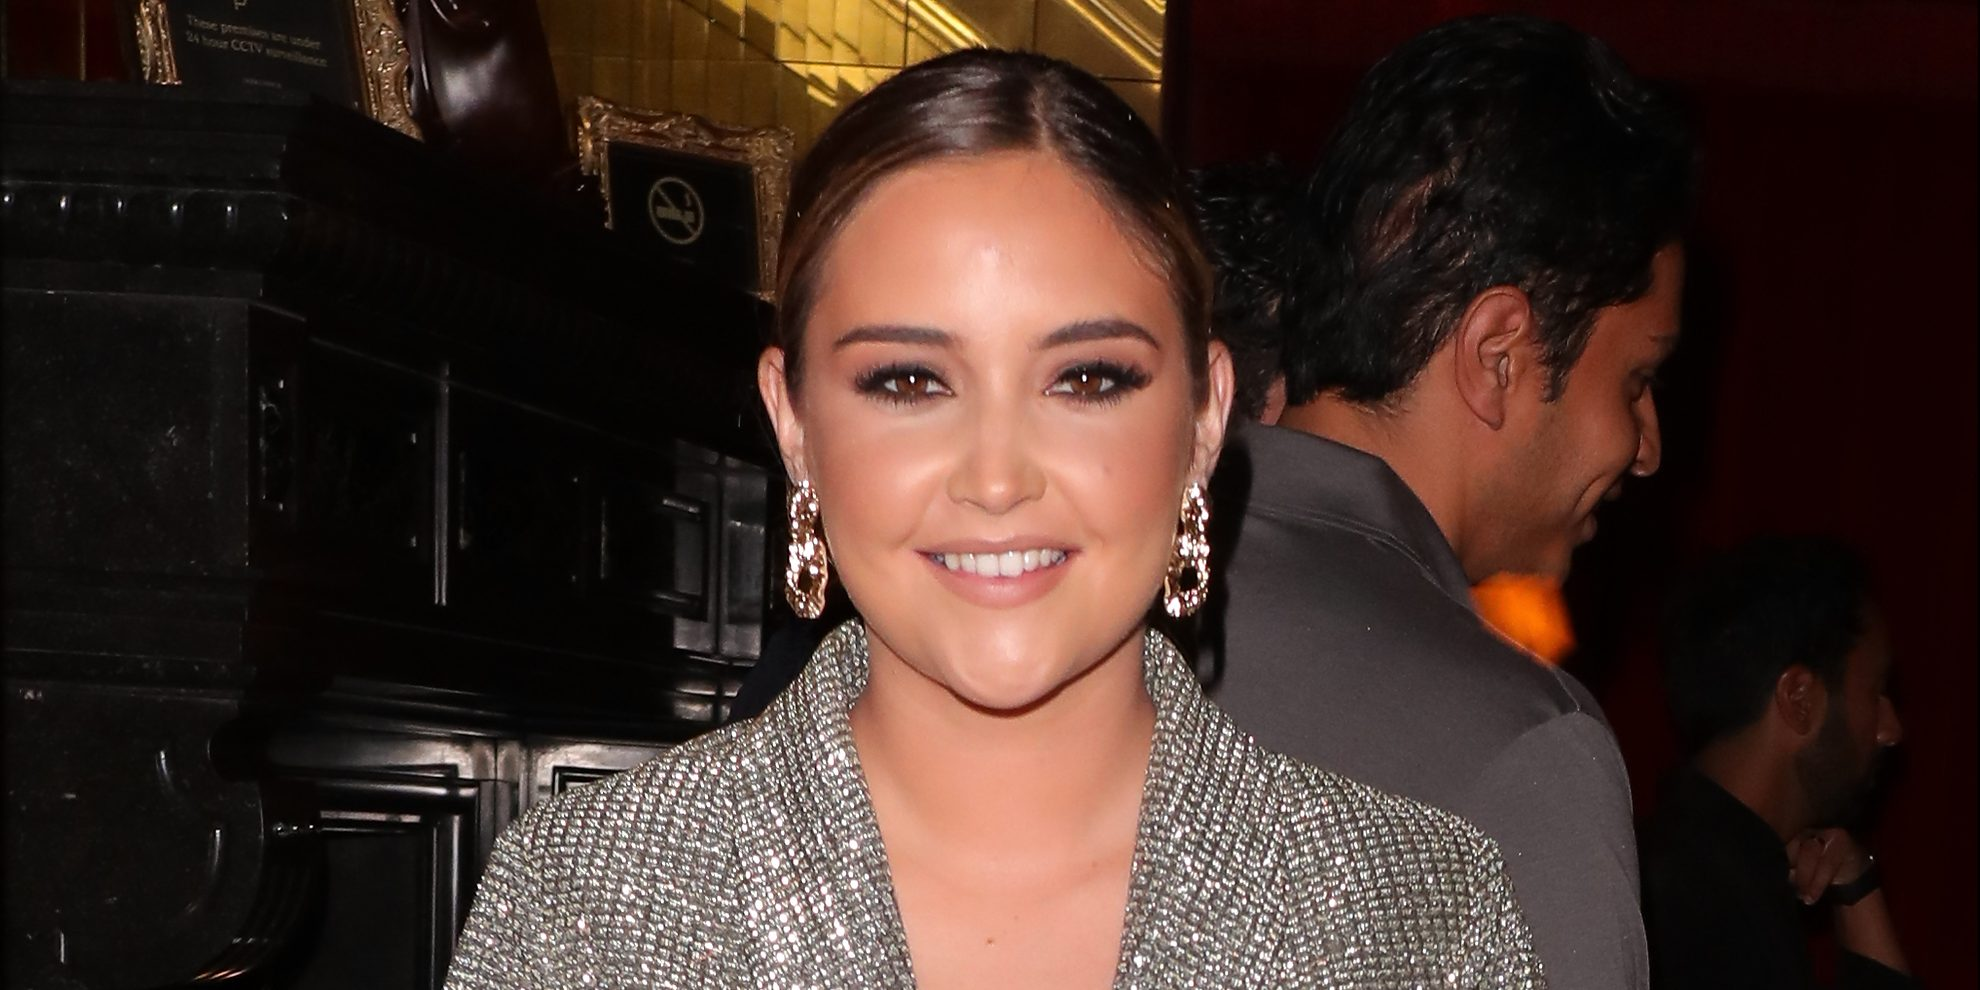 Former EastEnders star Jacqueline Jossa showcases her beautiful singing voice